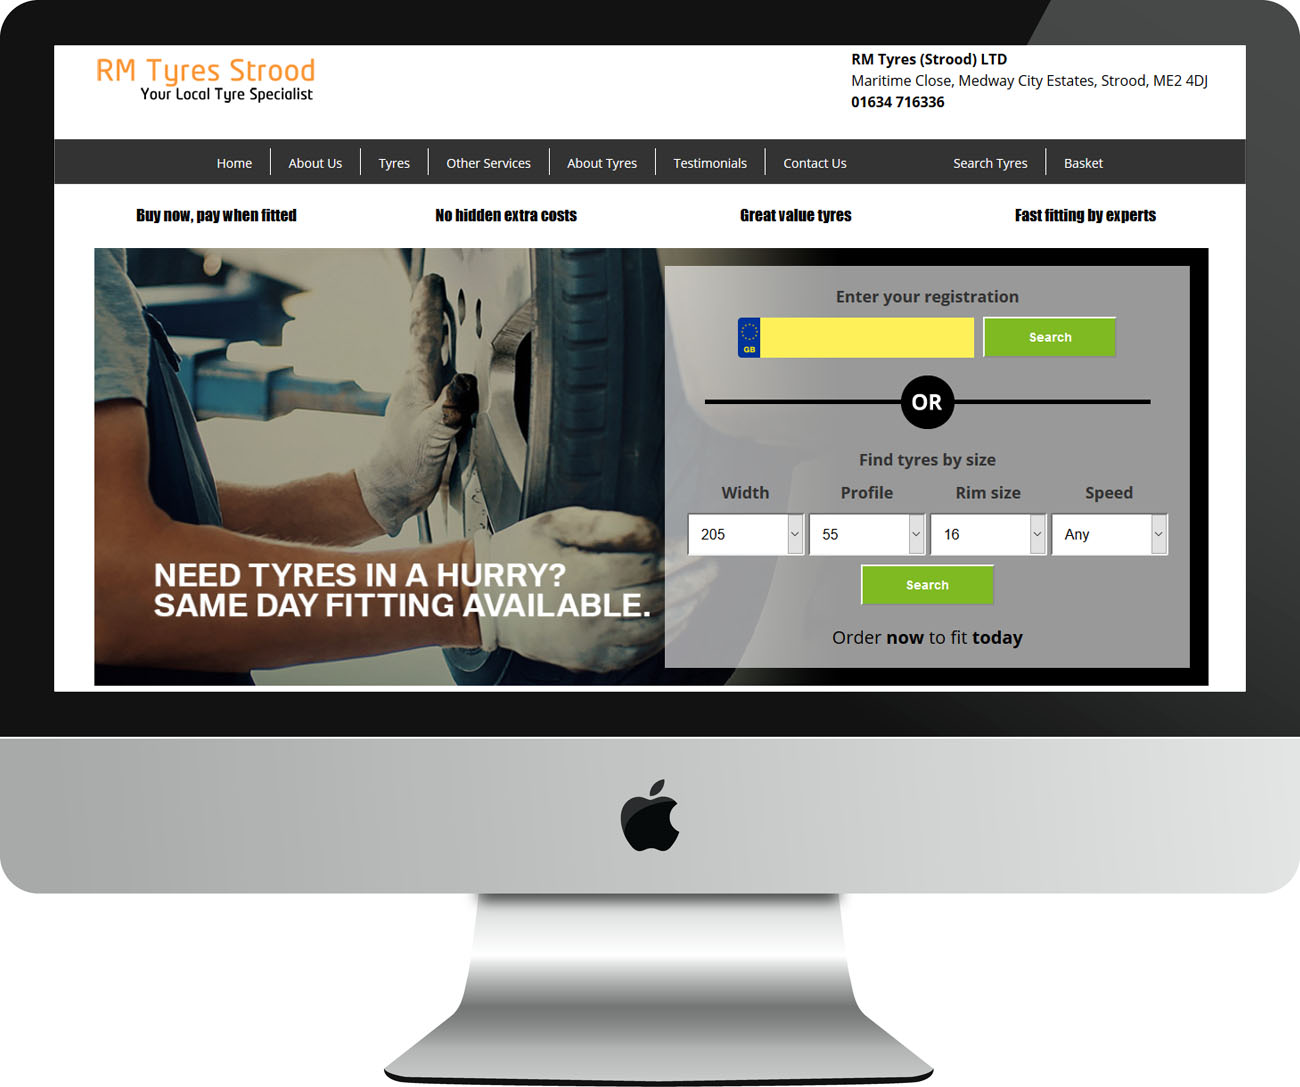 Web Design Project RM Tyres (Strood) Ltd - Desktop View